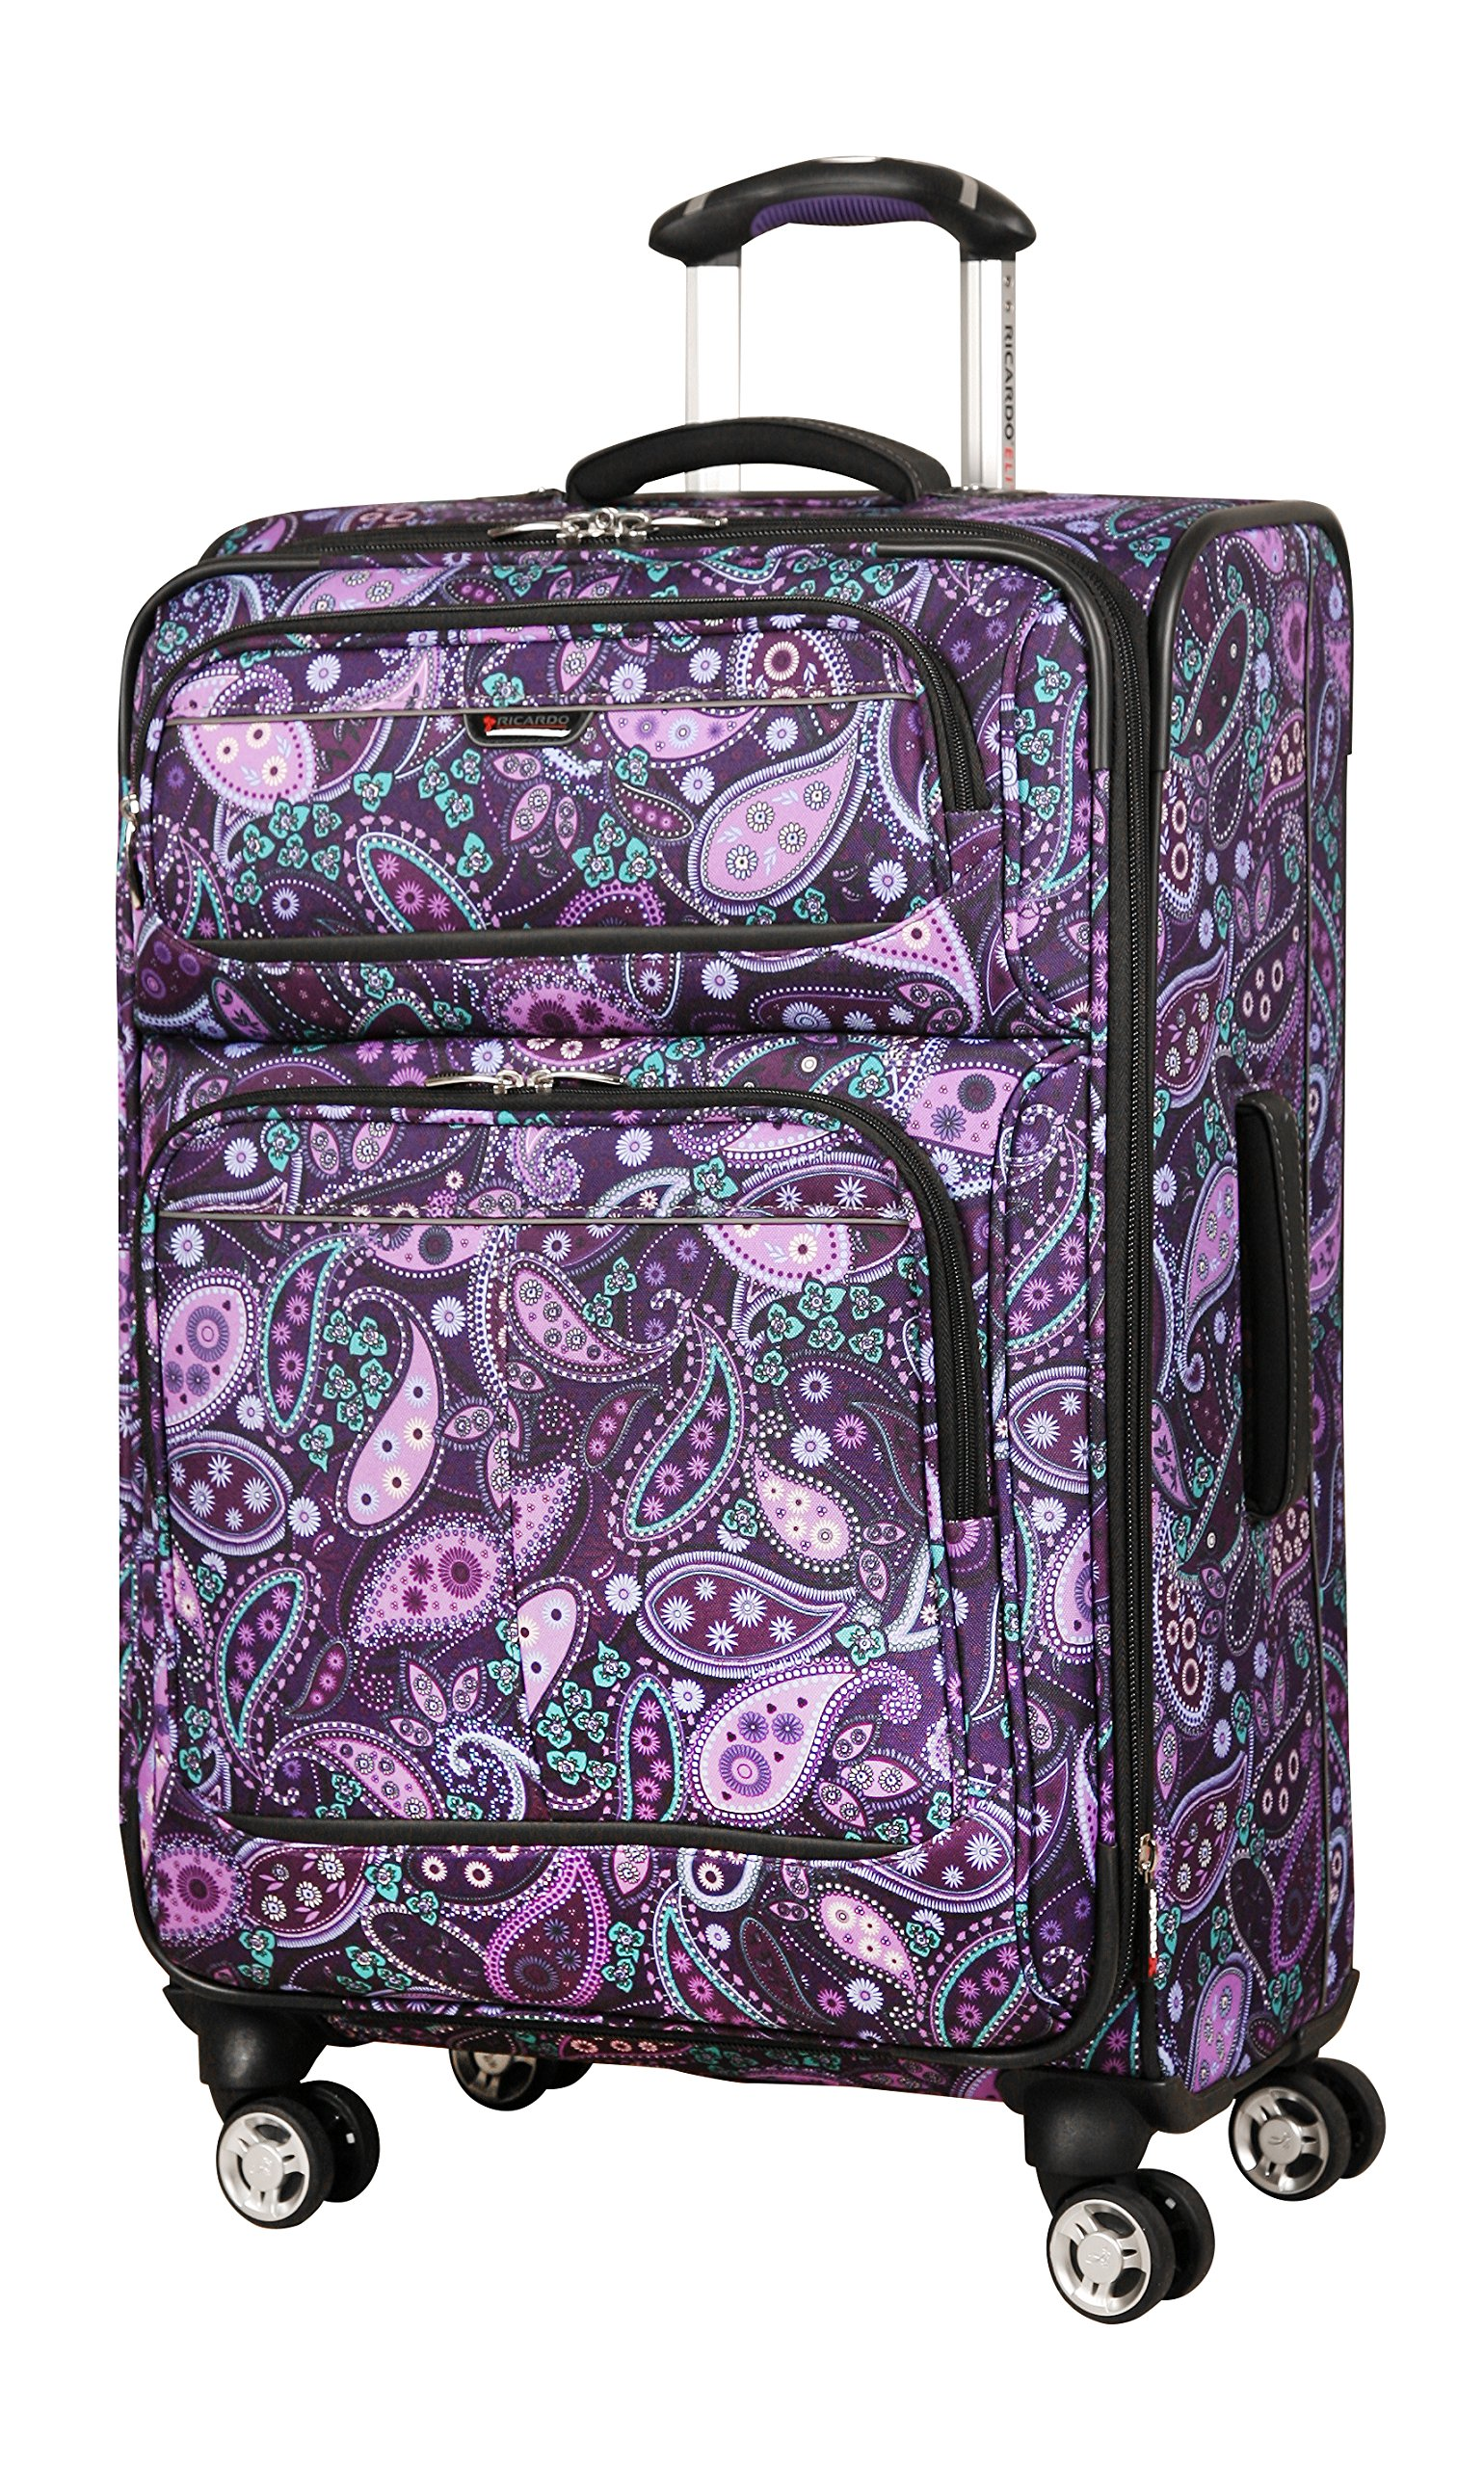 Ricardo Beverly Hills Mar Vista 24-Inch 4 Wheel Expandable Upright, Purple Paisley, One Size by Ricardo Beverly Hills